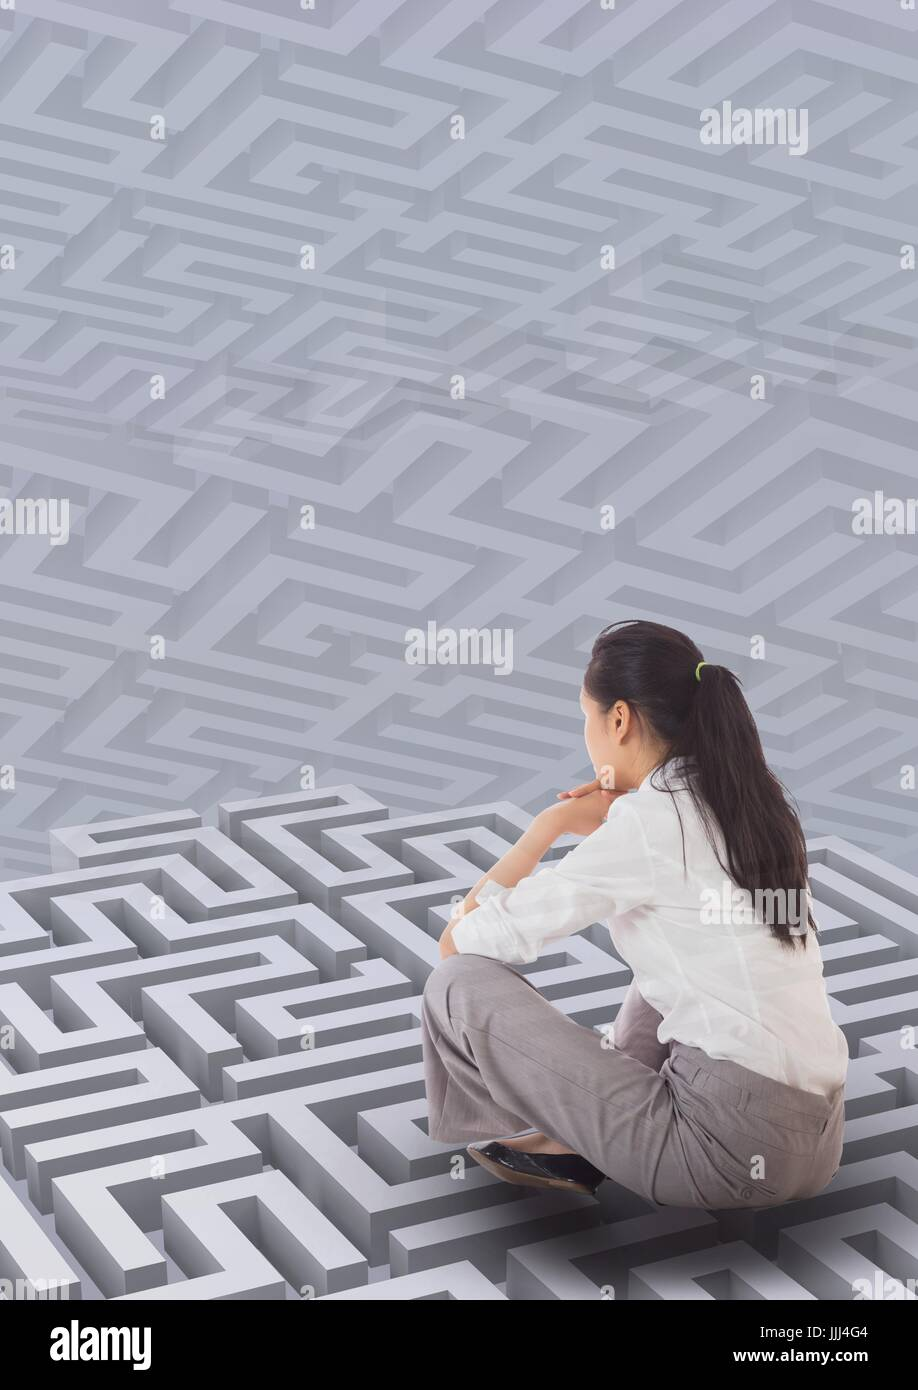 Woman sitting on a 3d maze against background with mazes - Stock Image